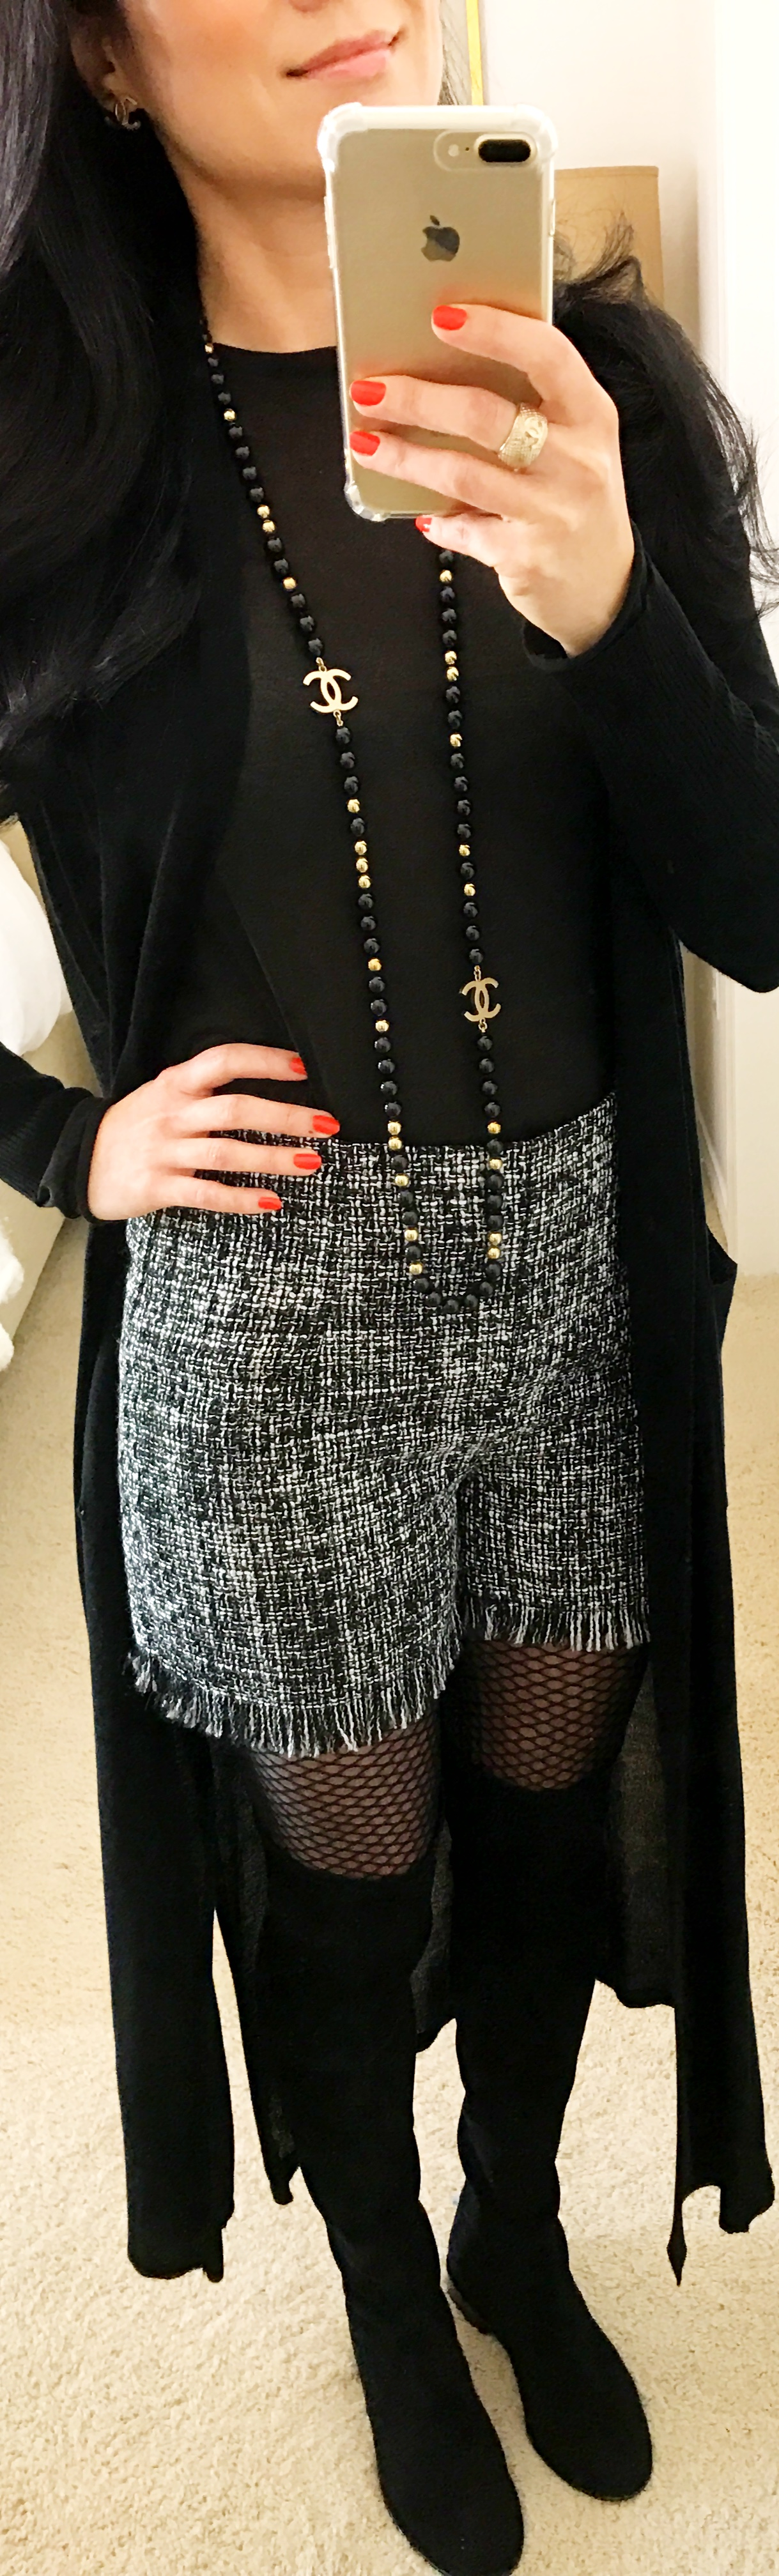 November 2, Zara Woven Shorts Stuart Weitzman Thighscraper Boots Zara Duster and CHANEL Beaded Necklace